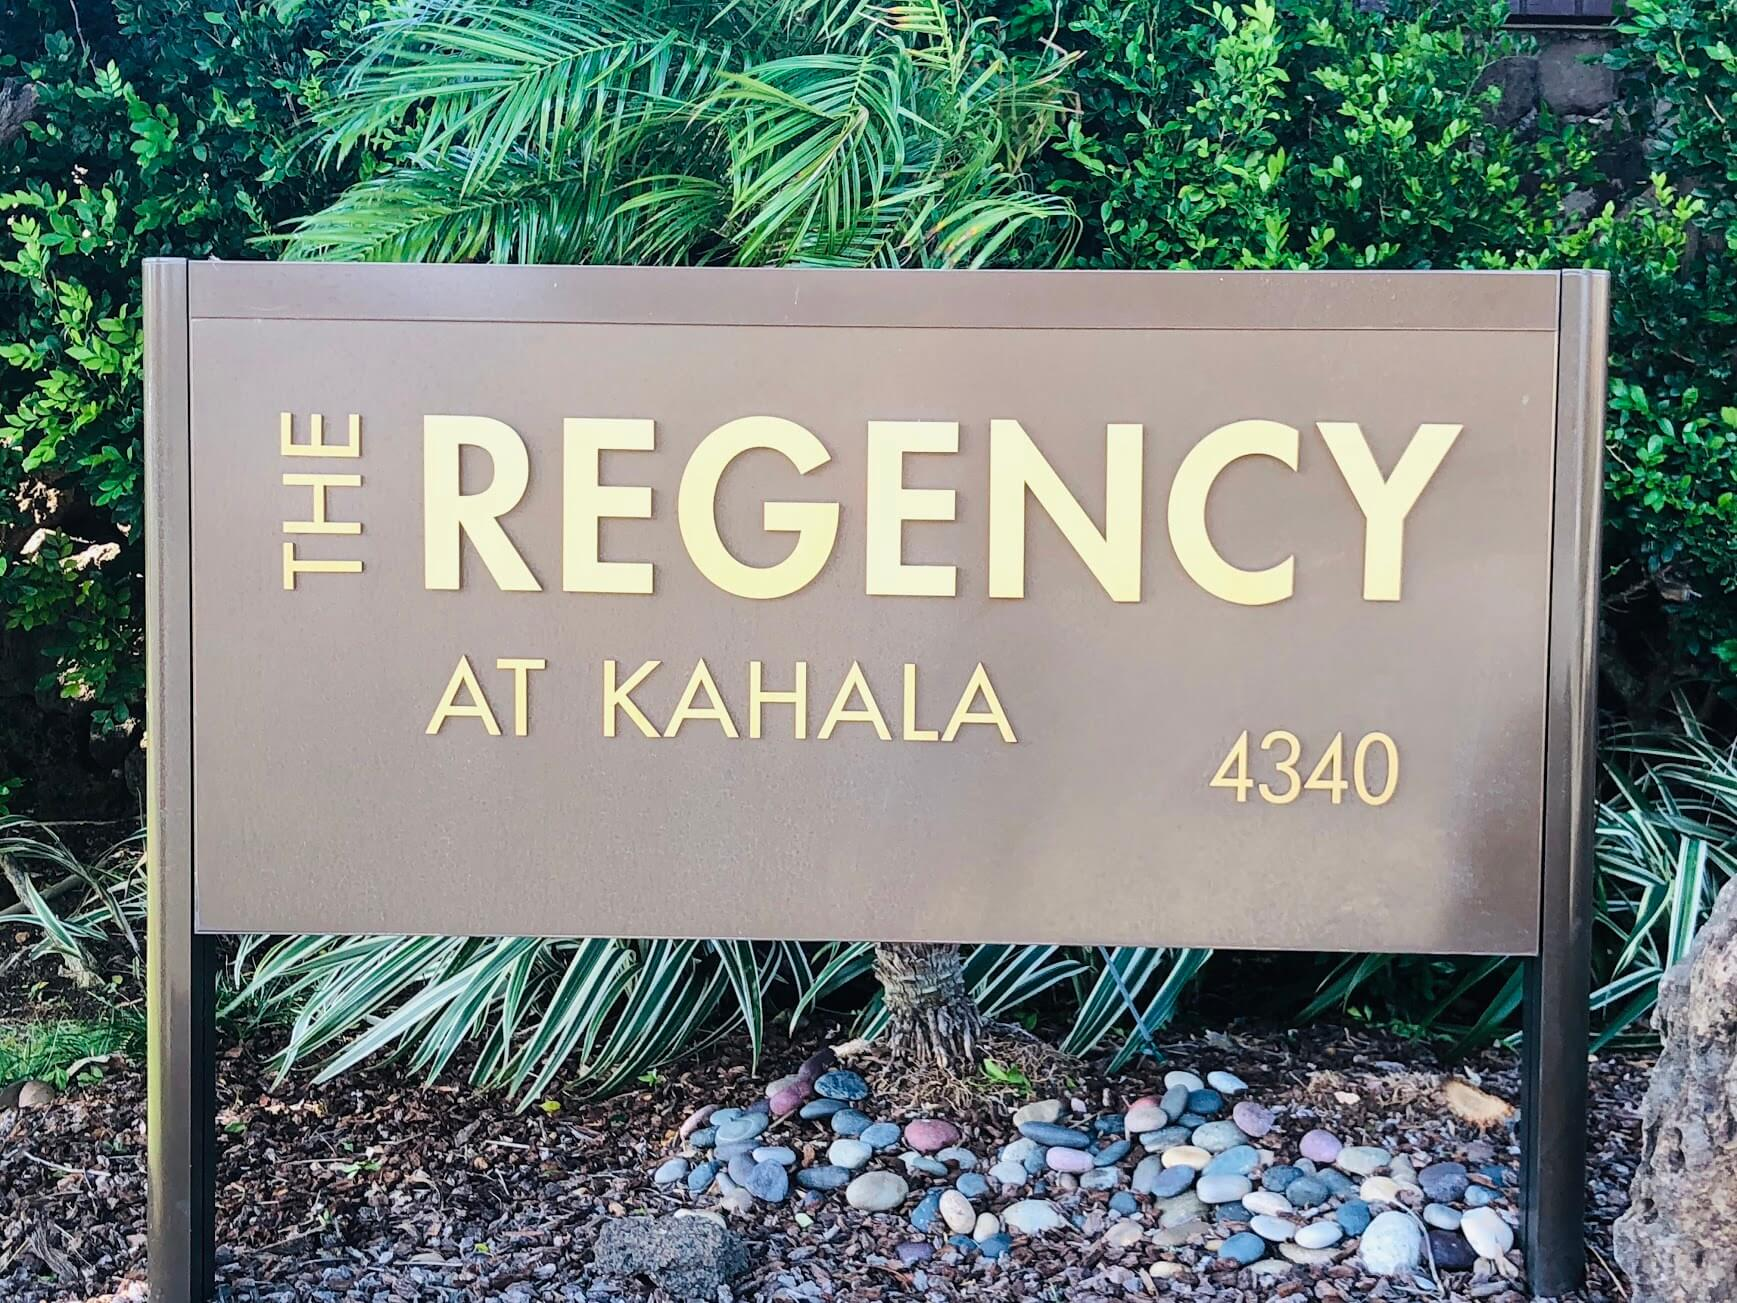 The Regency at Kahalaの看板